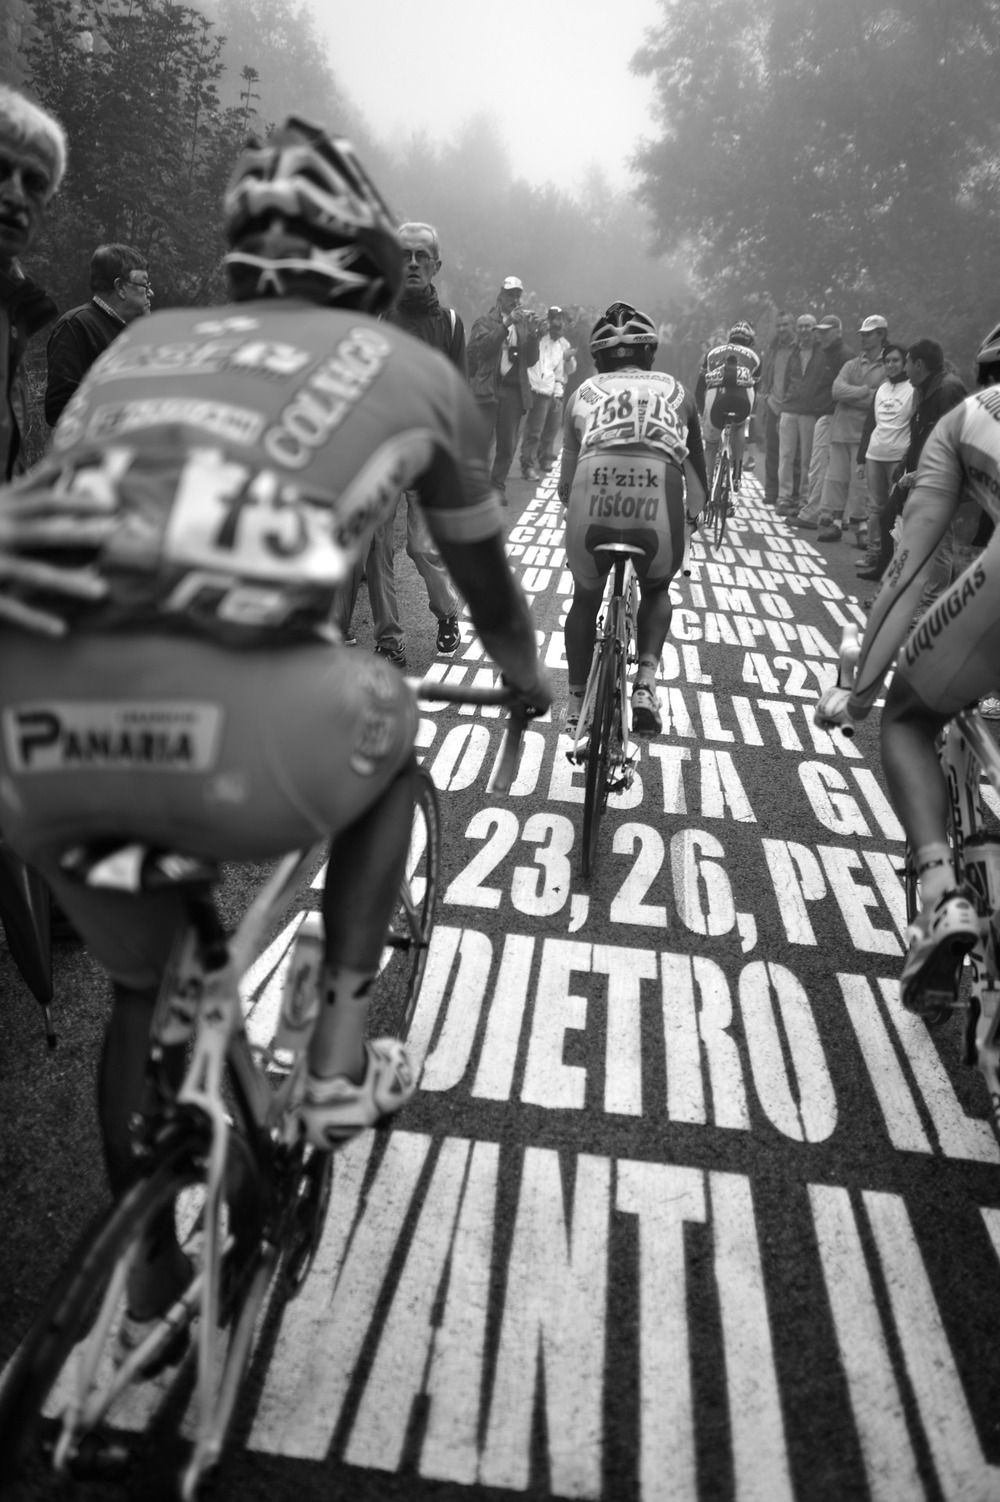 youcantbuyland :      sprintingforsigns :     Il Lombardia by Angelo Giangregorio   I absolutely love Angelo's photo's. For a long time I thought he was a Pro photographer, and frankly his shots are as good as many of those that make their living from it. He lives, loves and breathes cycling, and is genuinely one of lifes good guys. Enjoy this photo stream, it's beautiful, but fills me with guilt that I've not made it to this beautiful race that is Lombardia. Truly stunning stuff, enjoy.                 This weekend, one of the best races closes an incredible season.